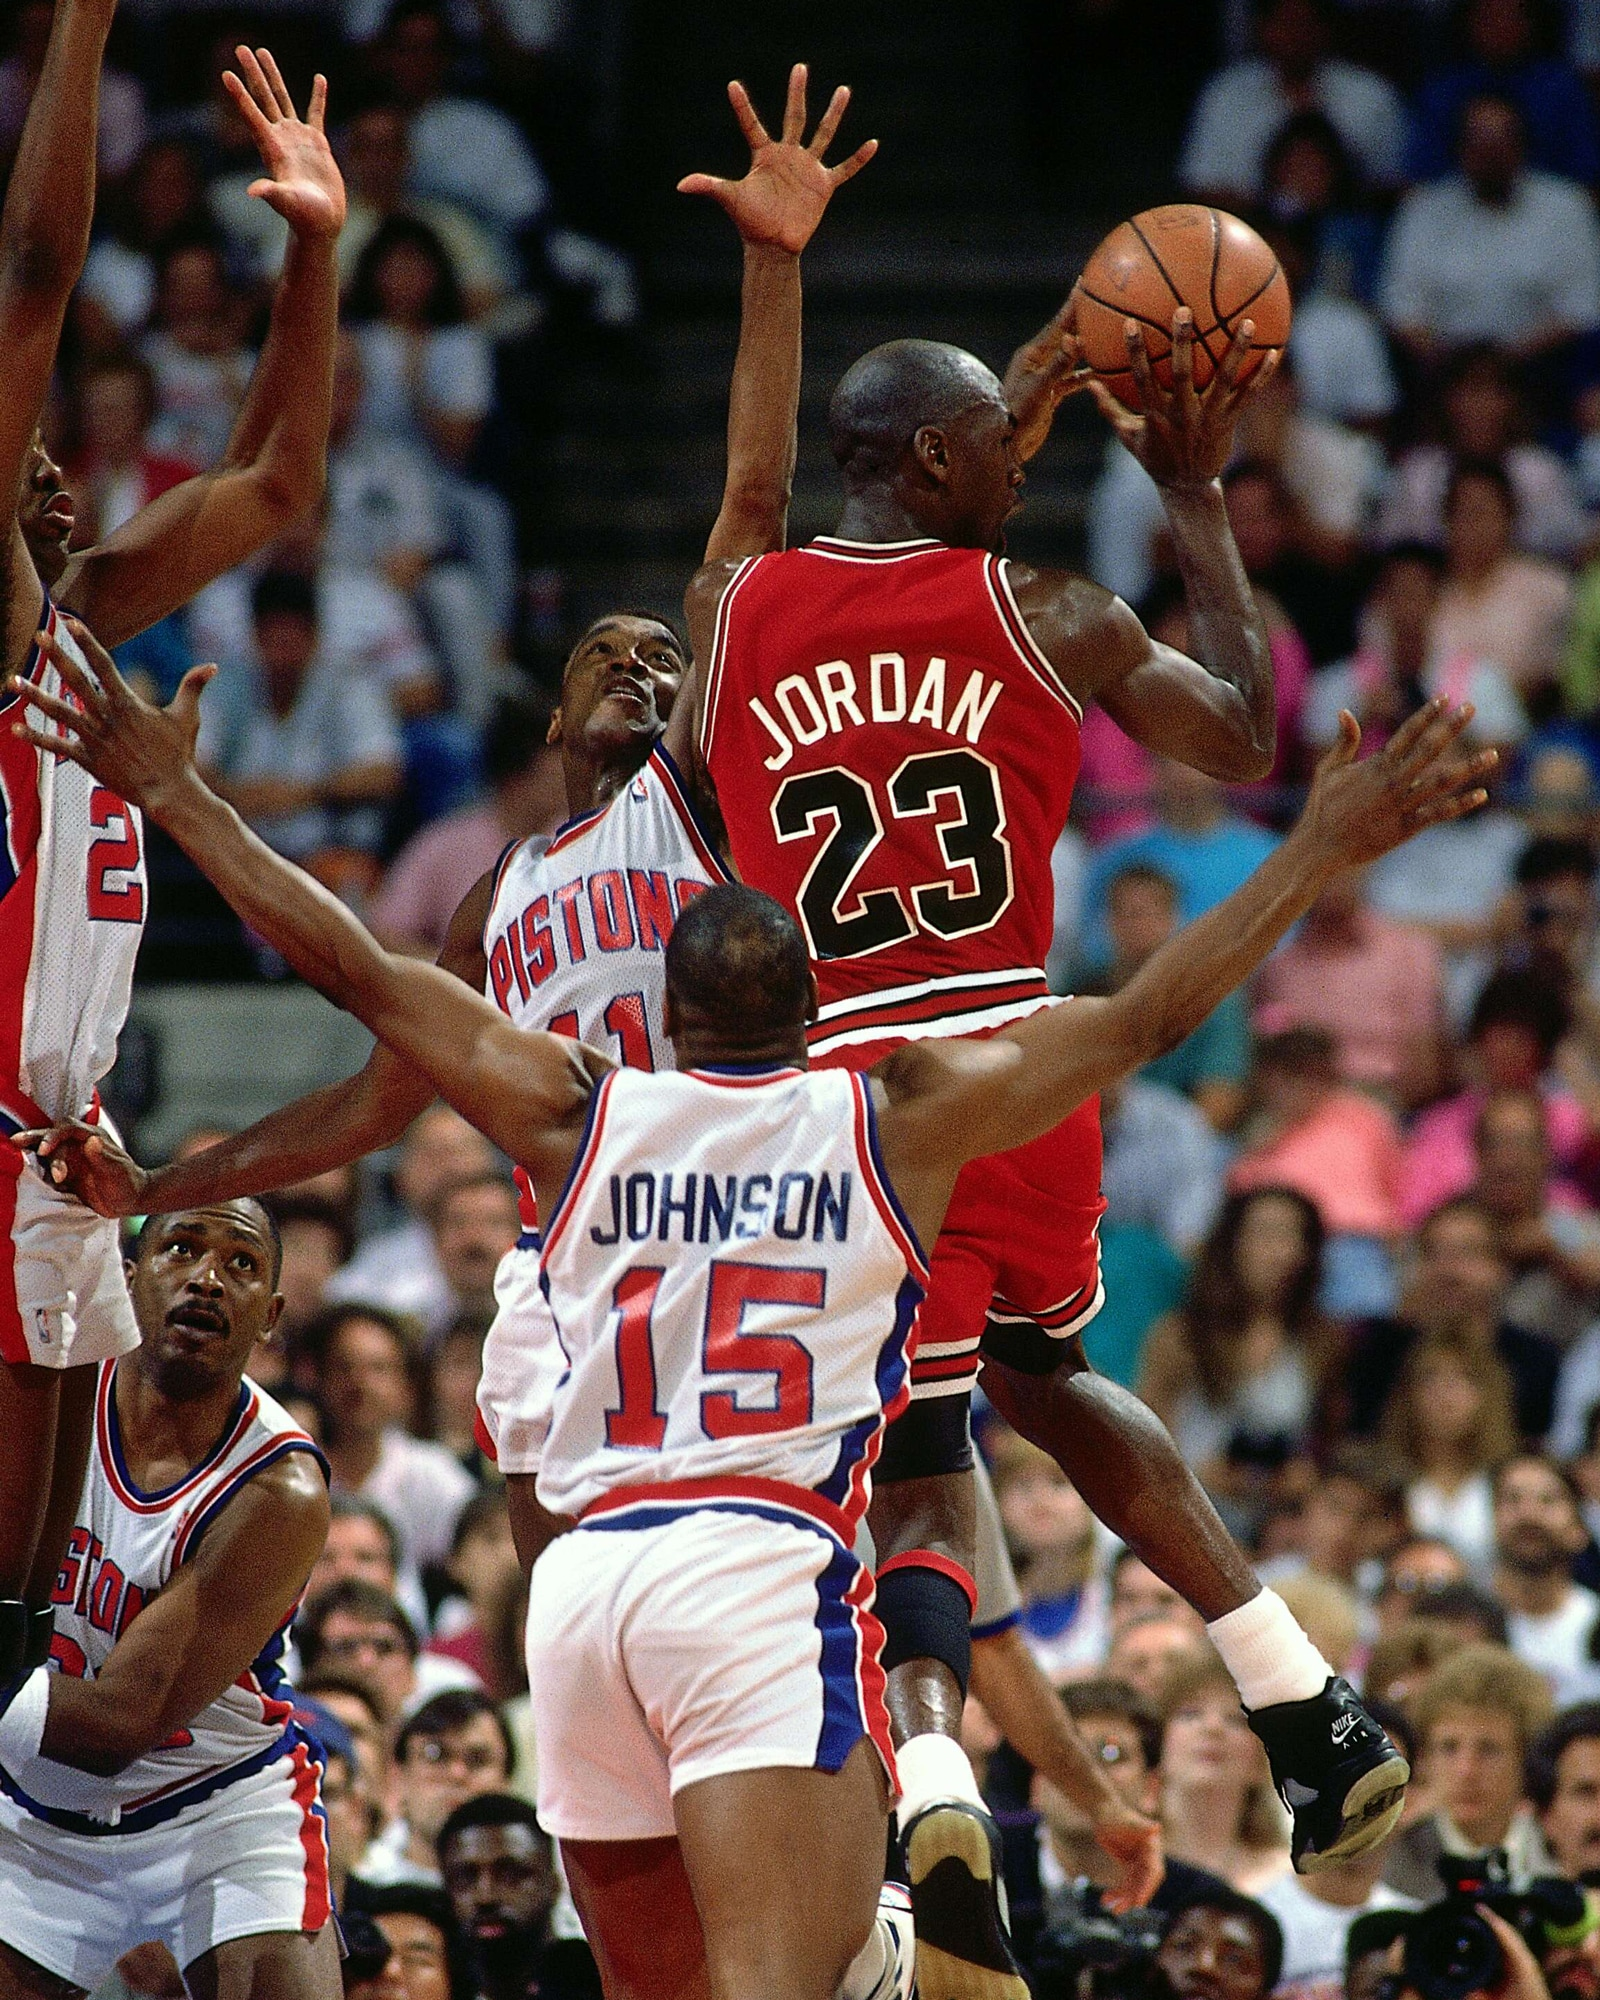 The Pistons defense collapses on a driving Jordan.